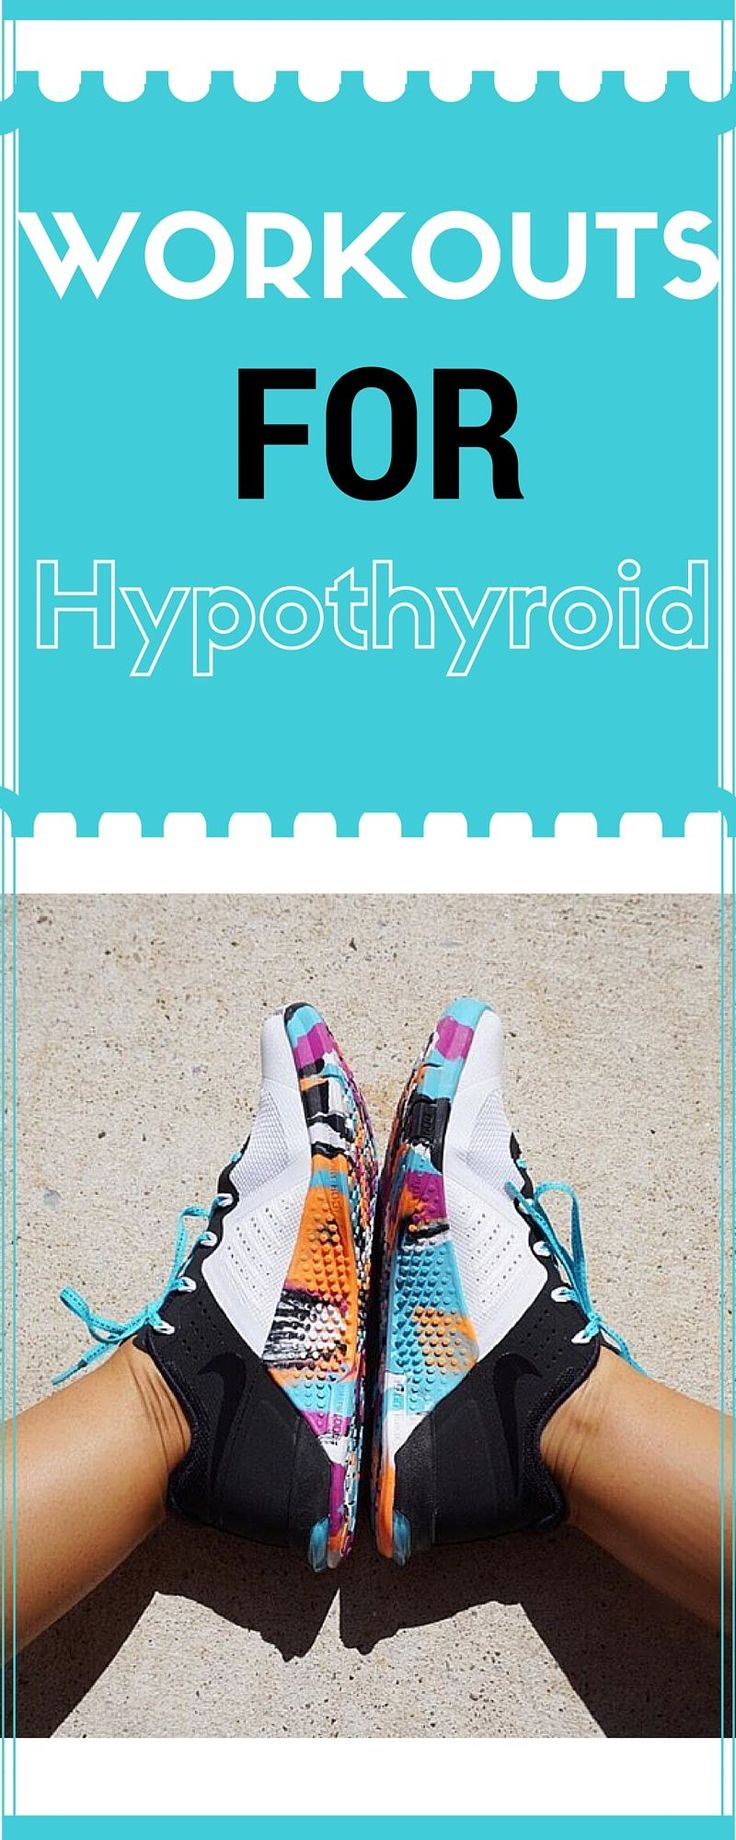 Full list of hypothyroid symptoms - Workouts Specifically Designed To Help You Lose Weight With Hypothyroidism